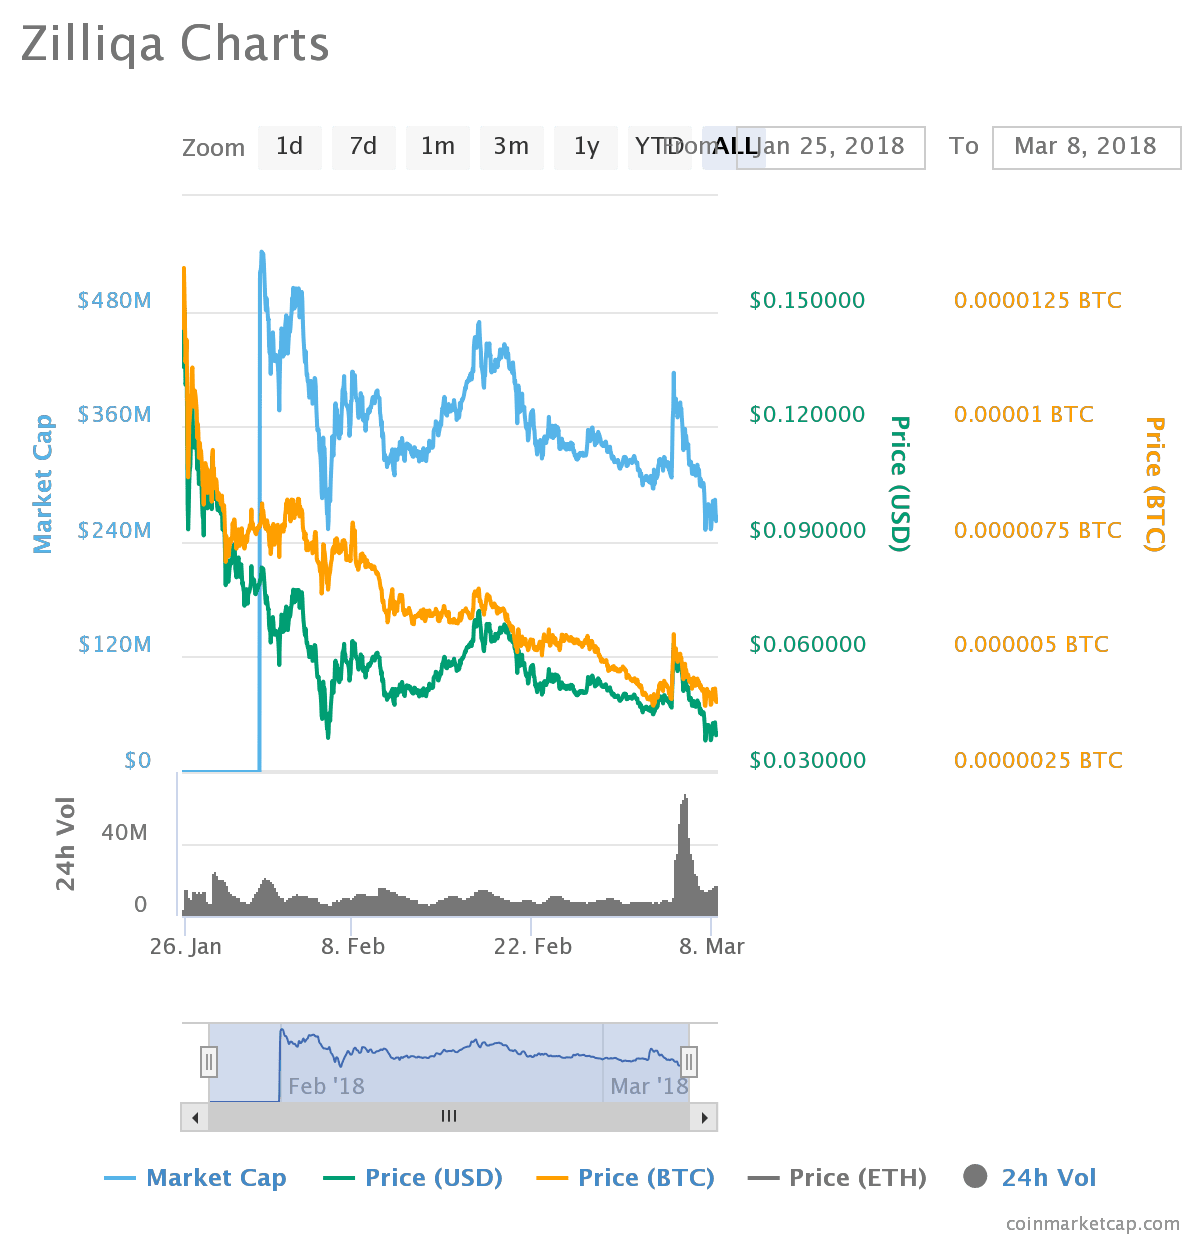 chart 3 - Zilliqa (ZIL) - Listed on Binance